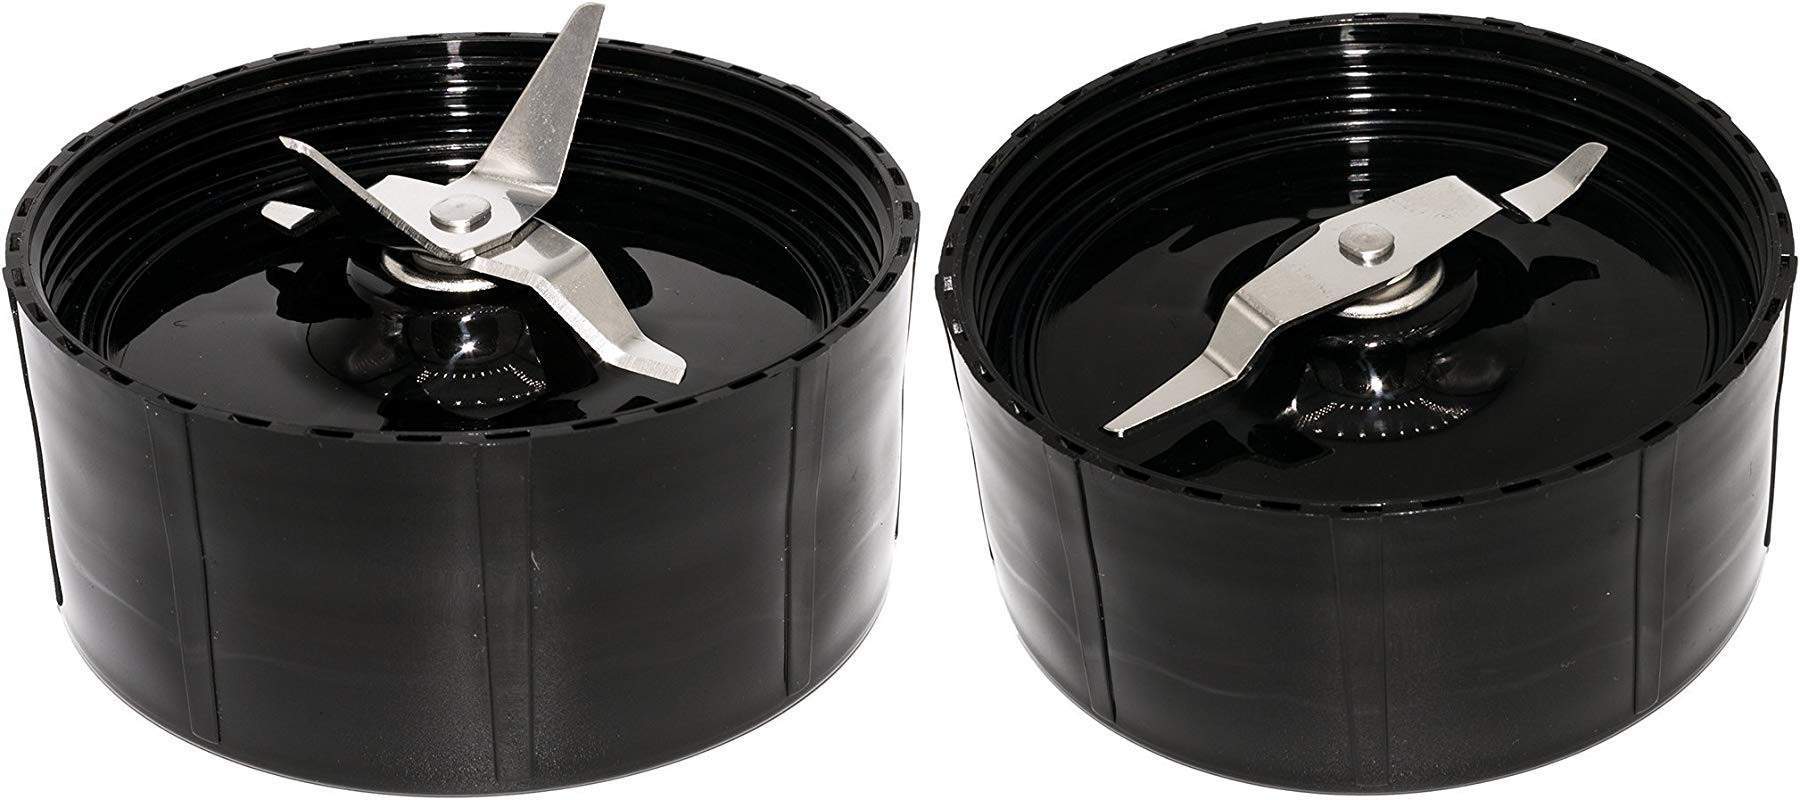 Blendin Replacement Cross And Flat Blades Compatible With Magic Bullet MB1001 Blenders